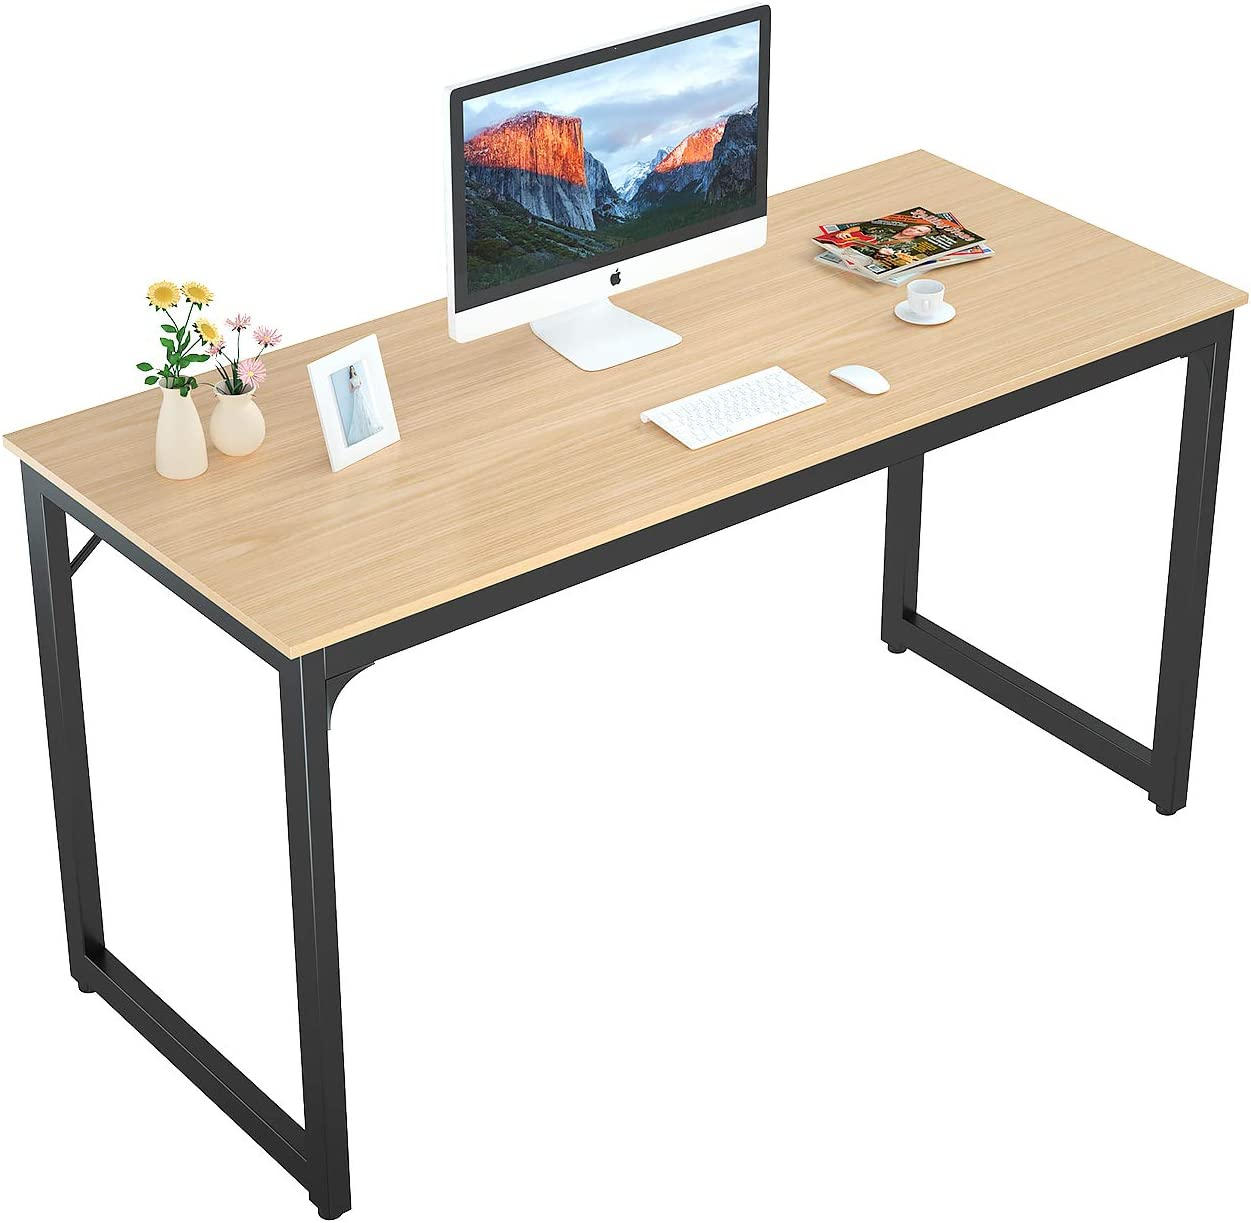 "Foxemart 55"" Computer Desk Modern Sturdy Office Desk PC Laptop Notebook Study Writing Table for Home Office Workstation, Natural"